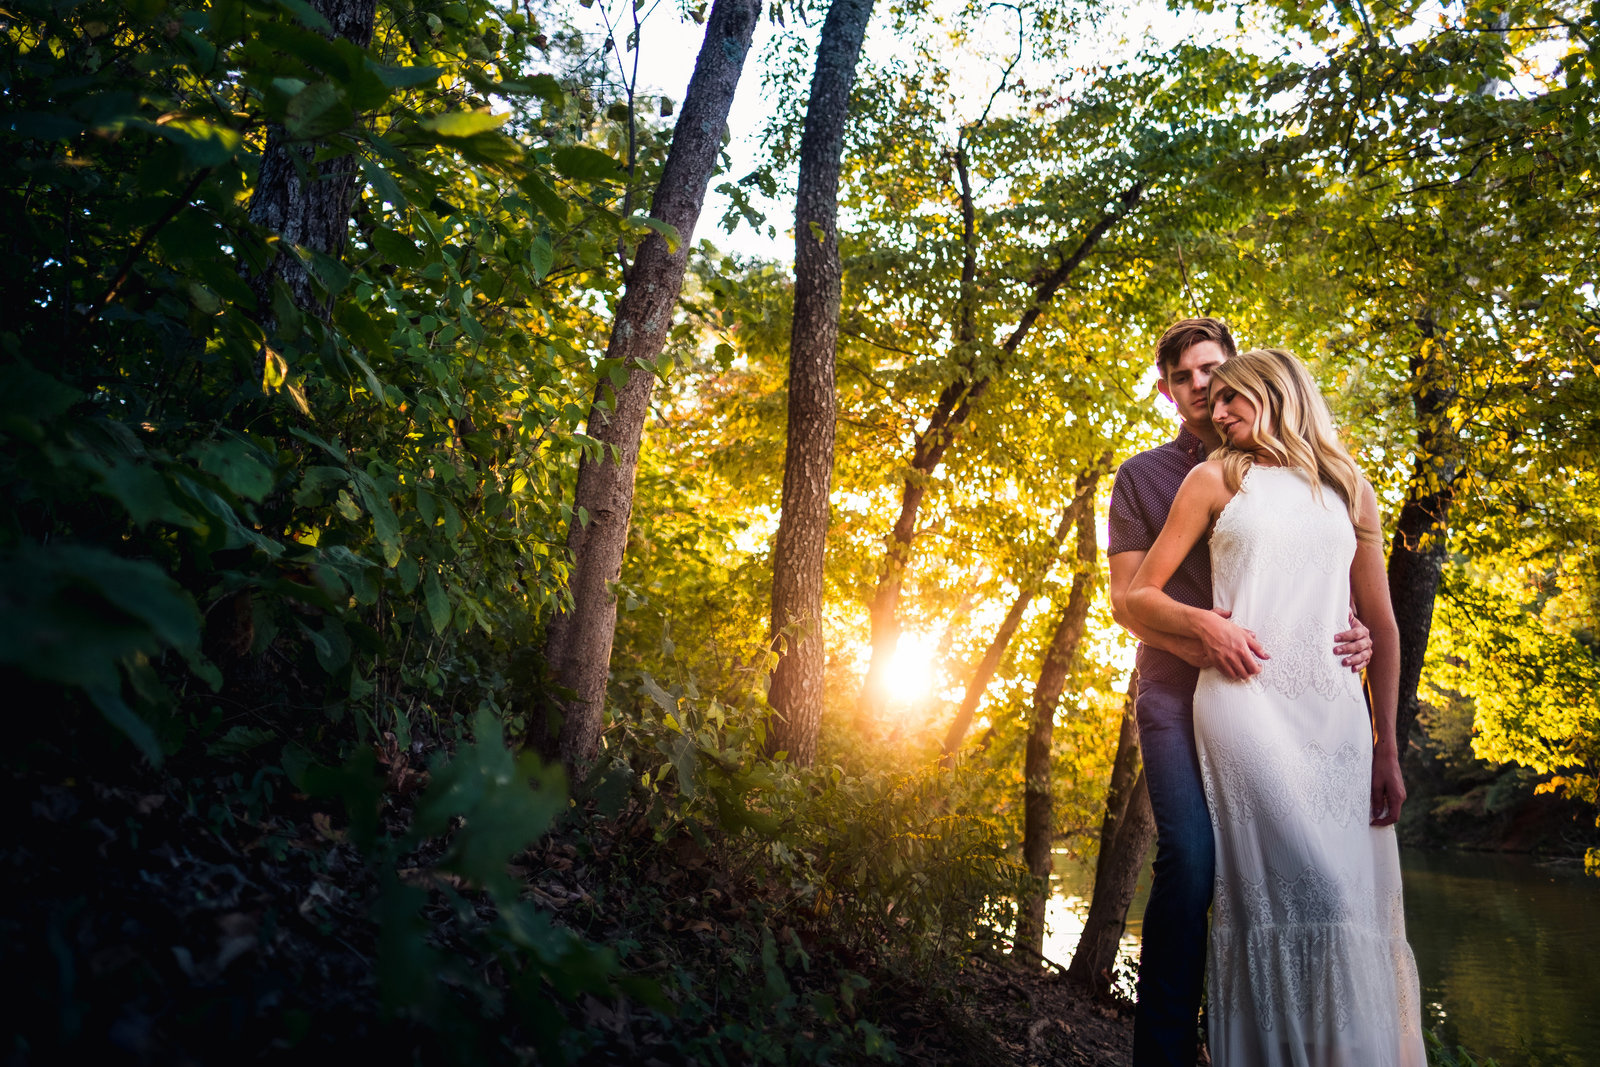 Vinson-Images-Fayetteville-Arkansas-NWA-Wedding-Photographer-lake